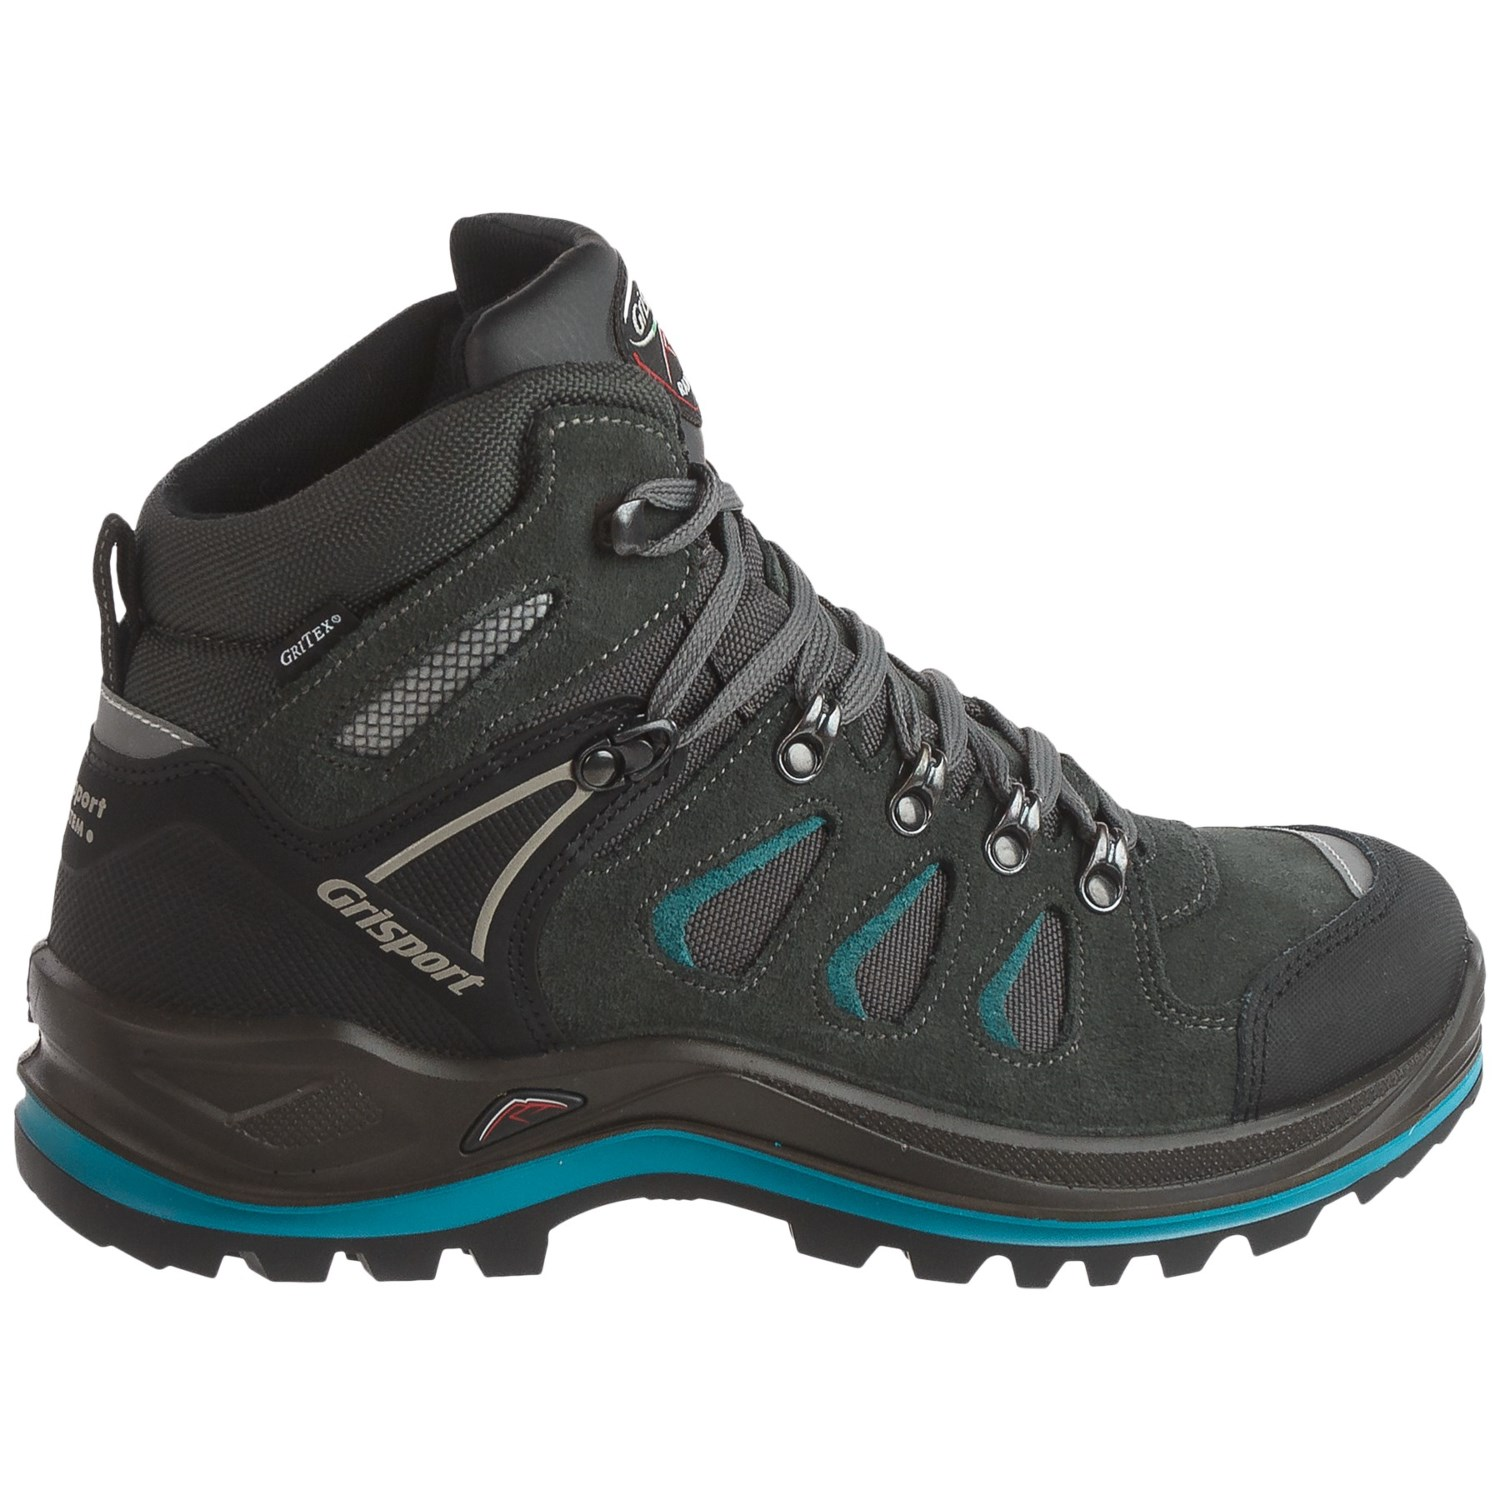 Grisport Hiking Shoes Review